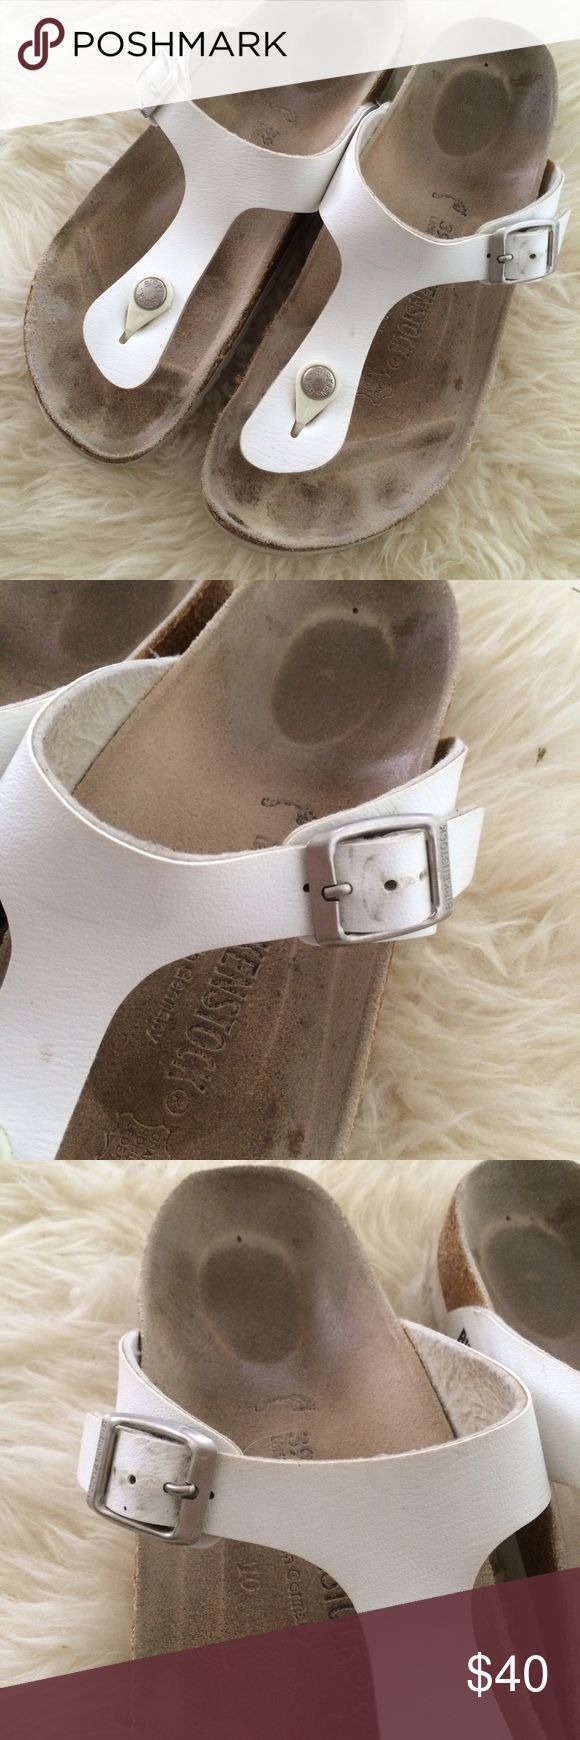 Birkenstock Gizeh size 39 narrow GUC These are a reposh. They are 39, which is sometimes listed as 9 US, but are too small for me. I would say they are best for 8.5. White uppers and soles. Obviously worn, but still lots of life for Birks. Birkenstock Shoes